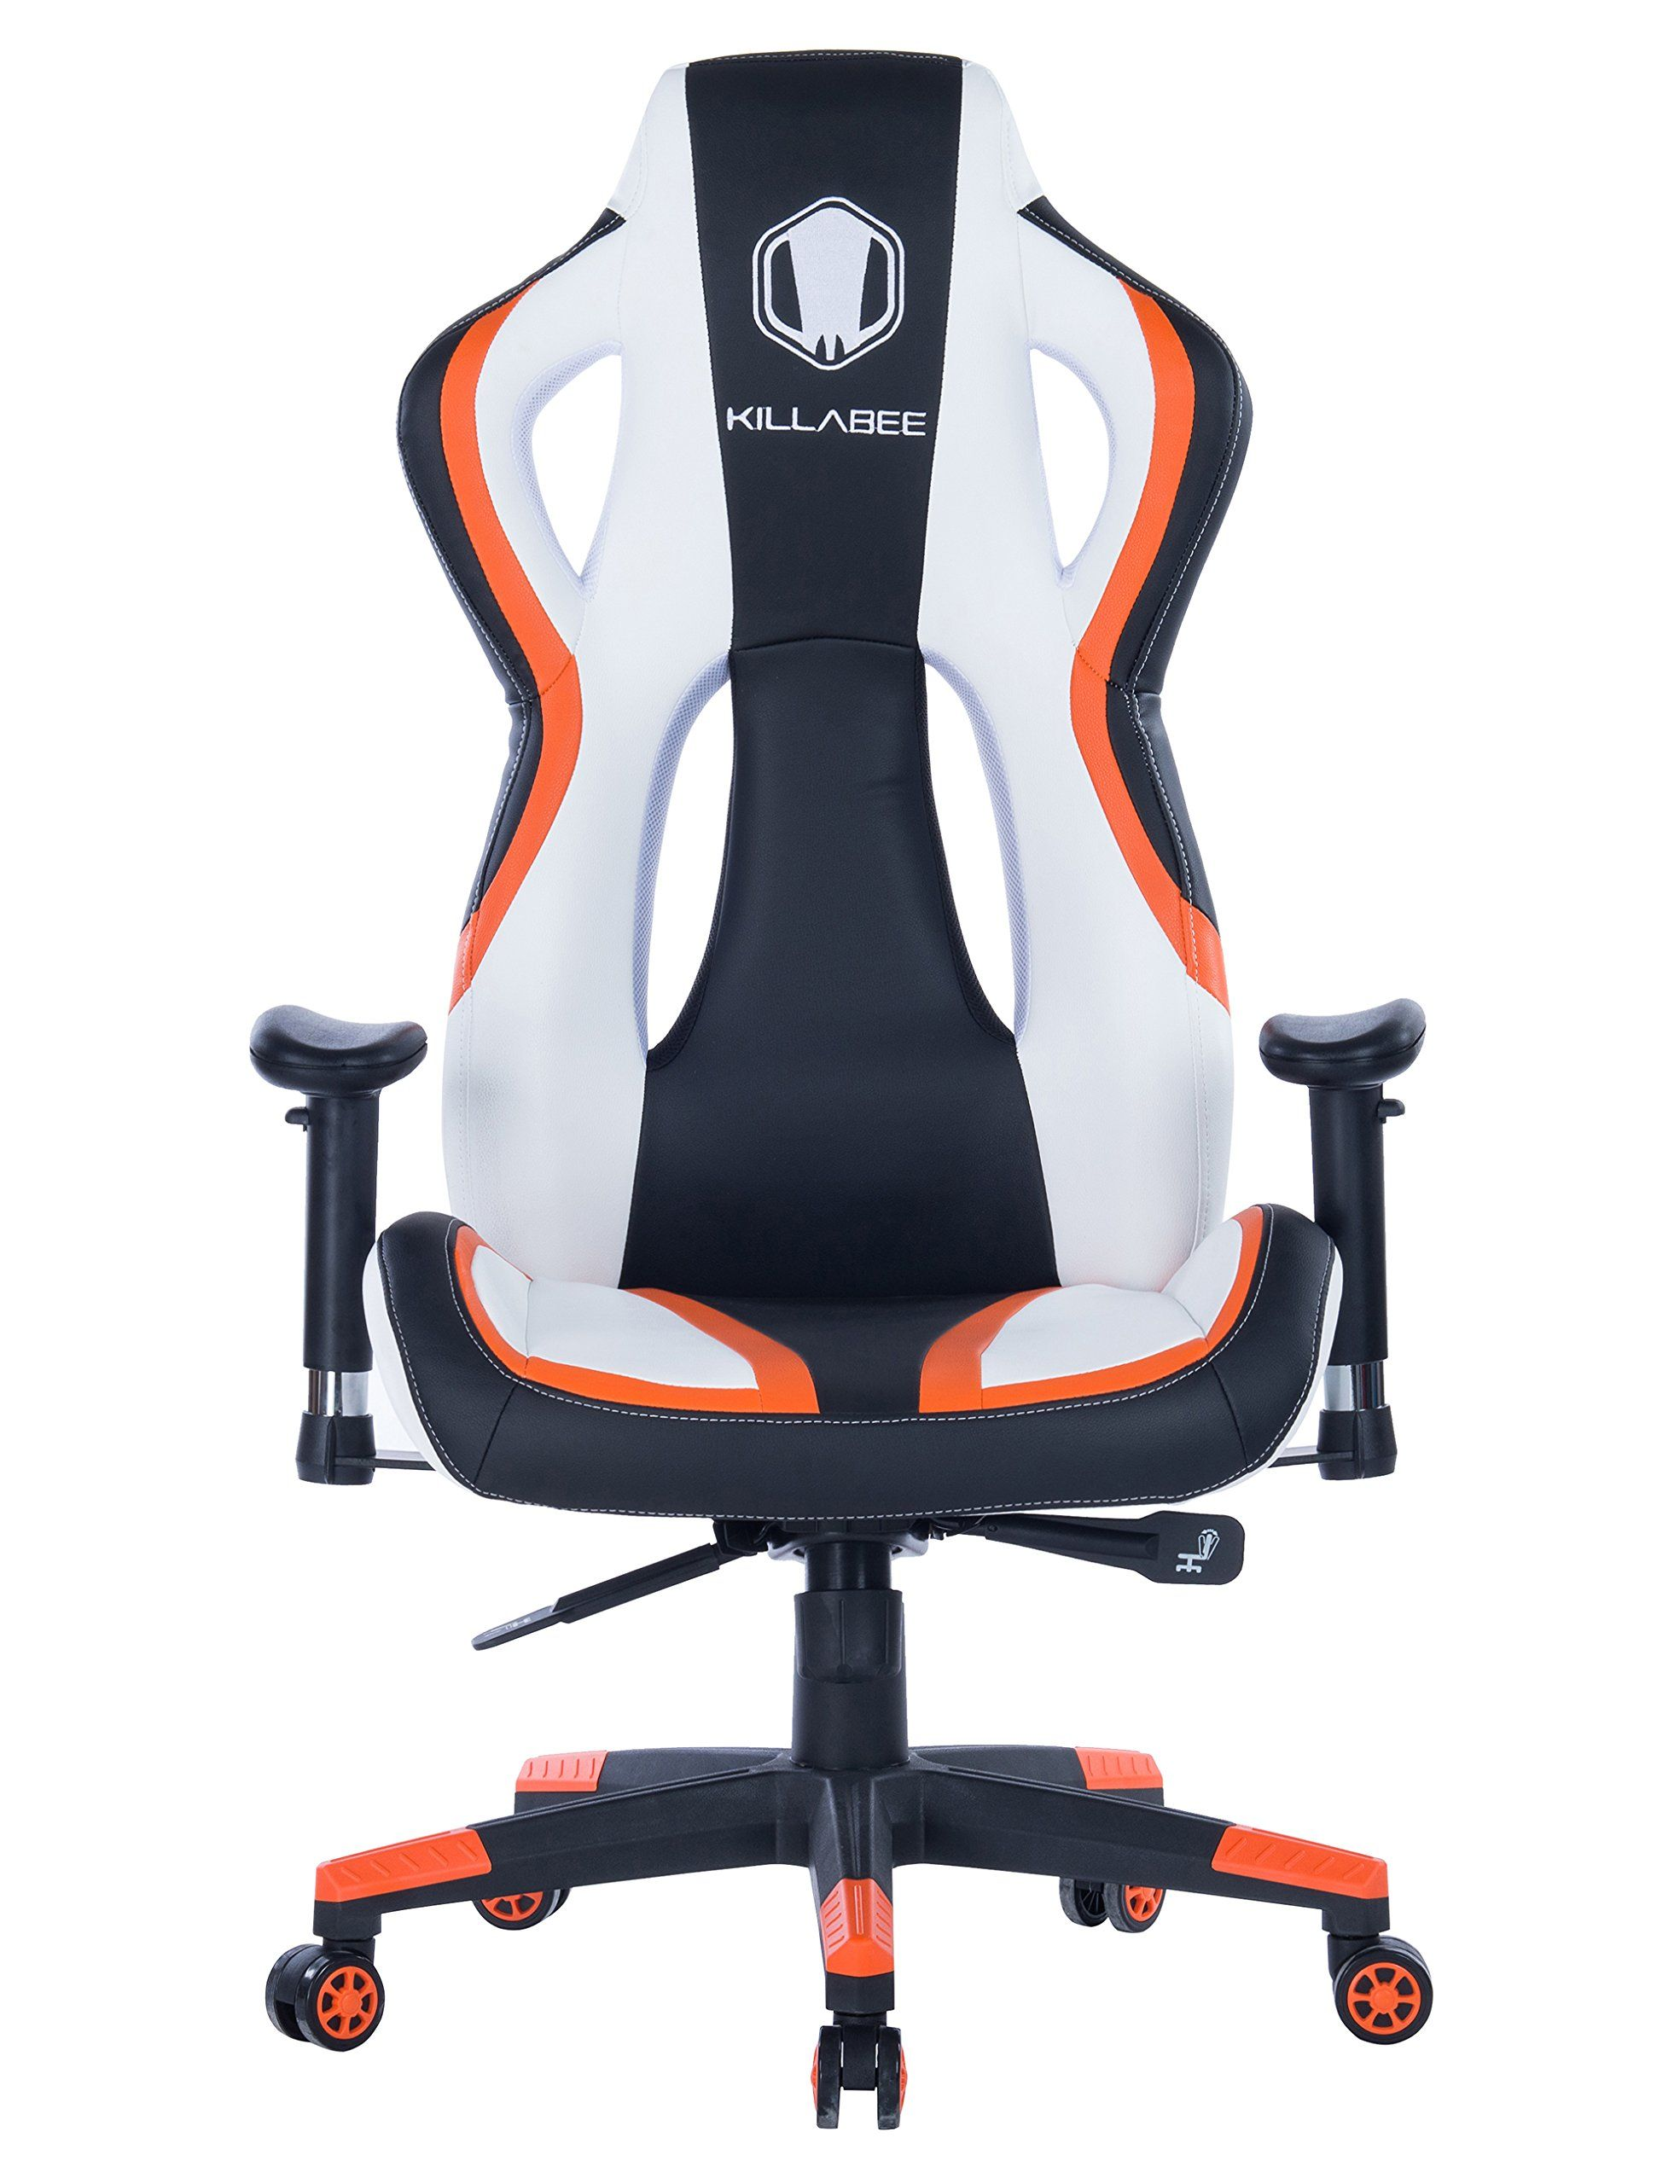 Killbee Ergonomic Gaming Chair Swivel Executive fice Chair